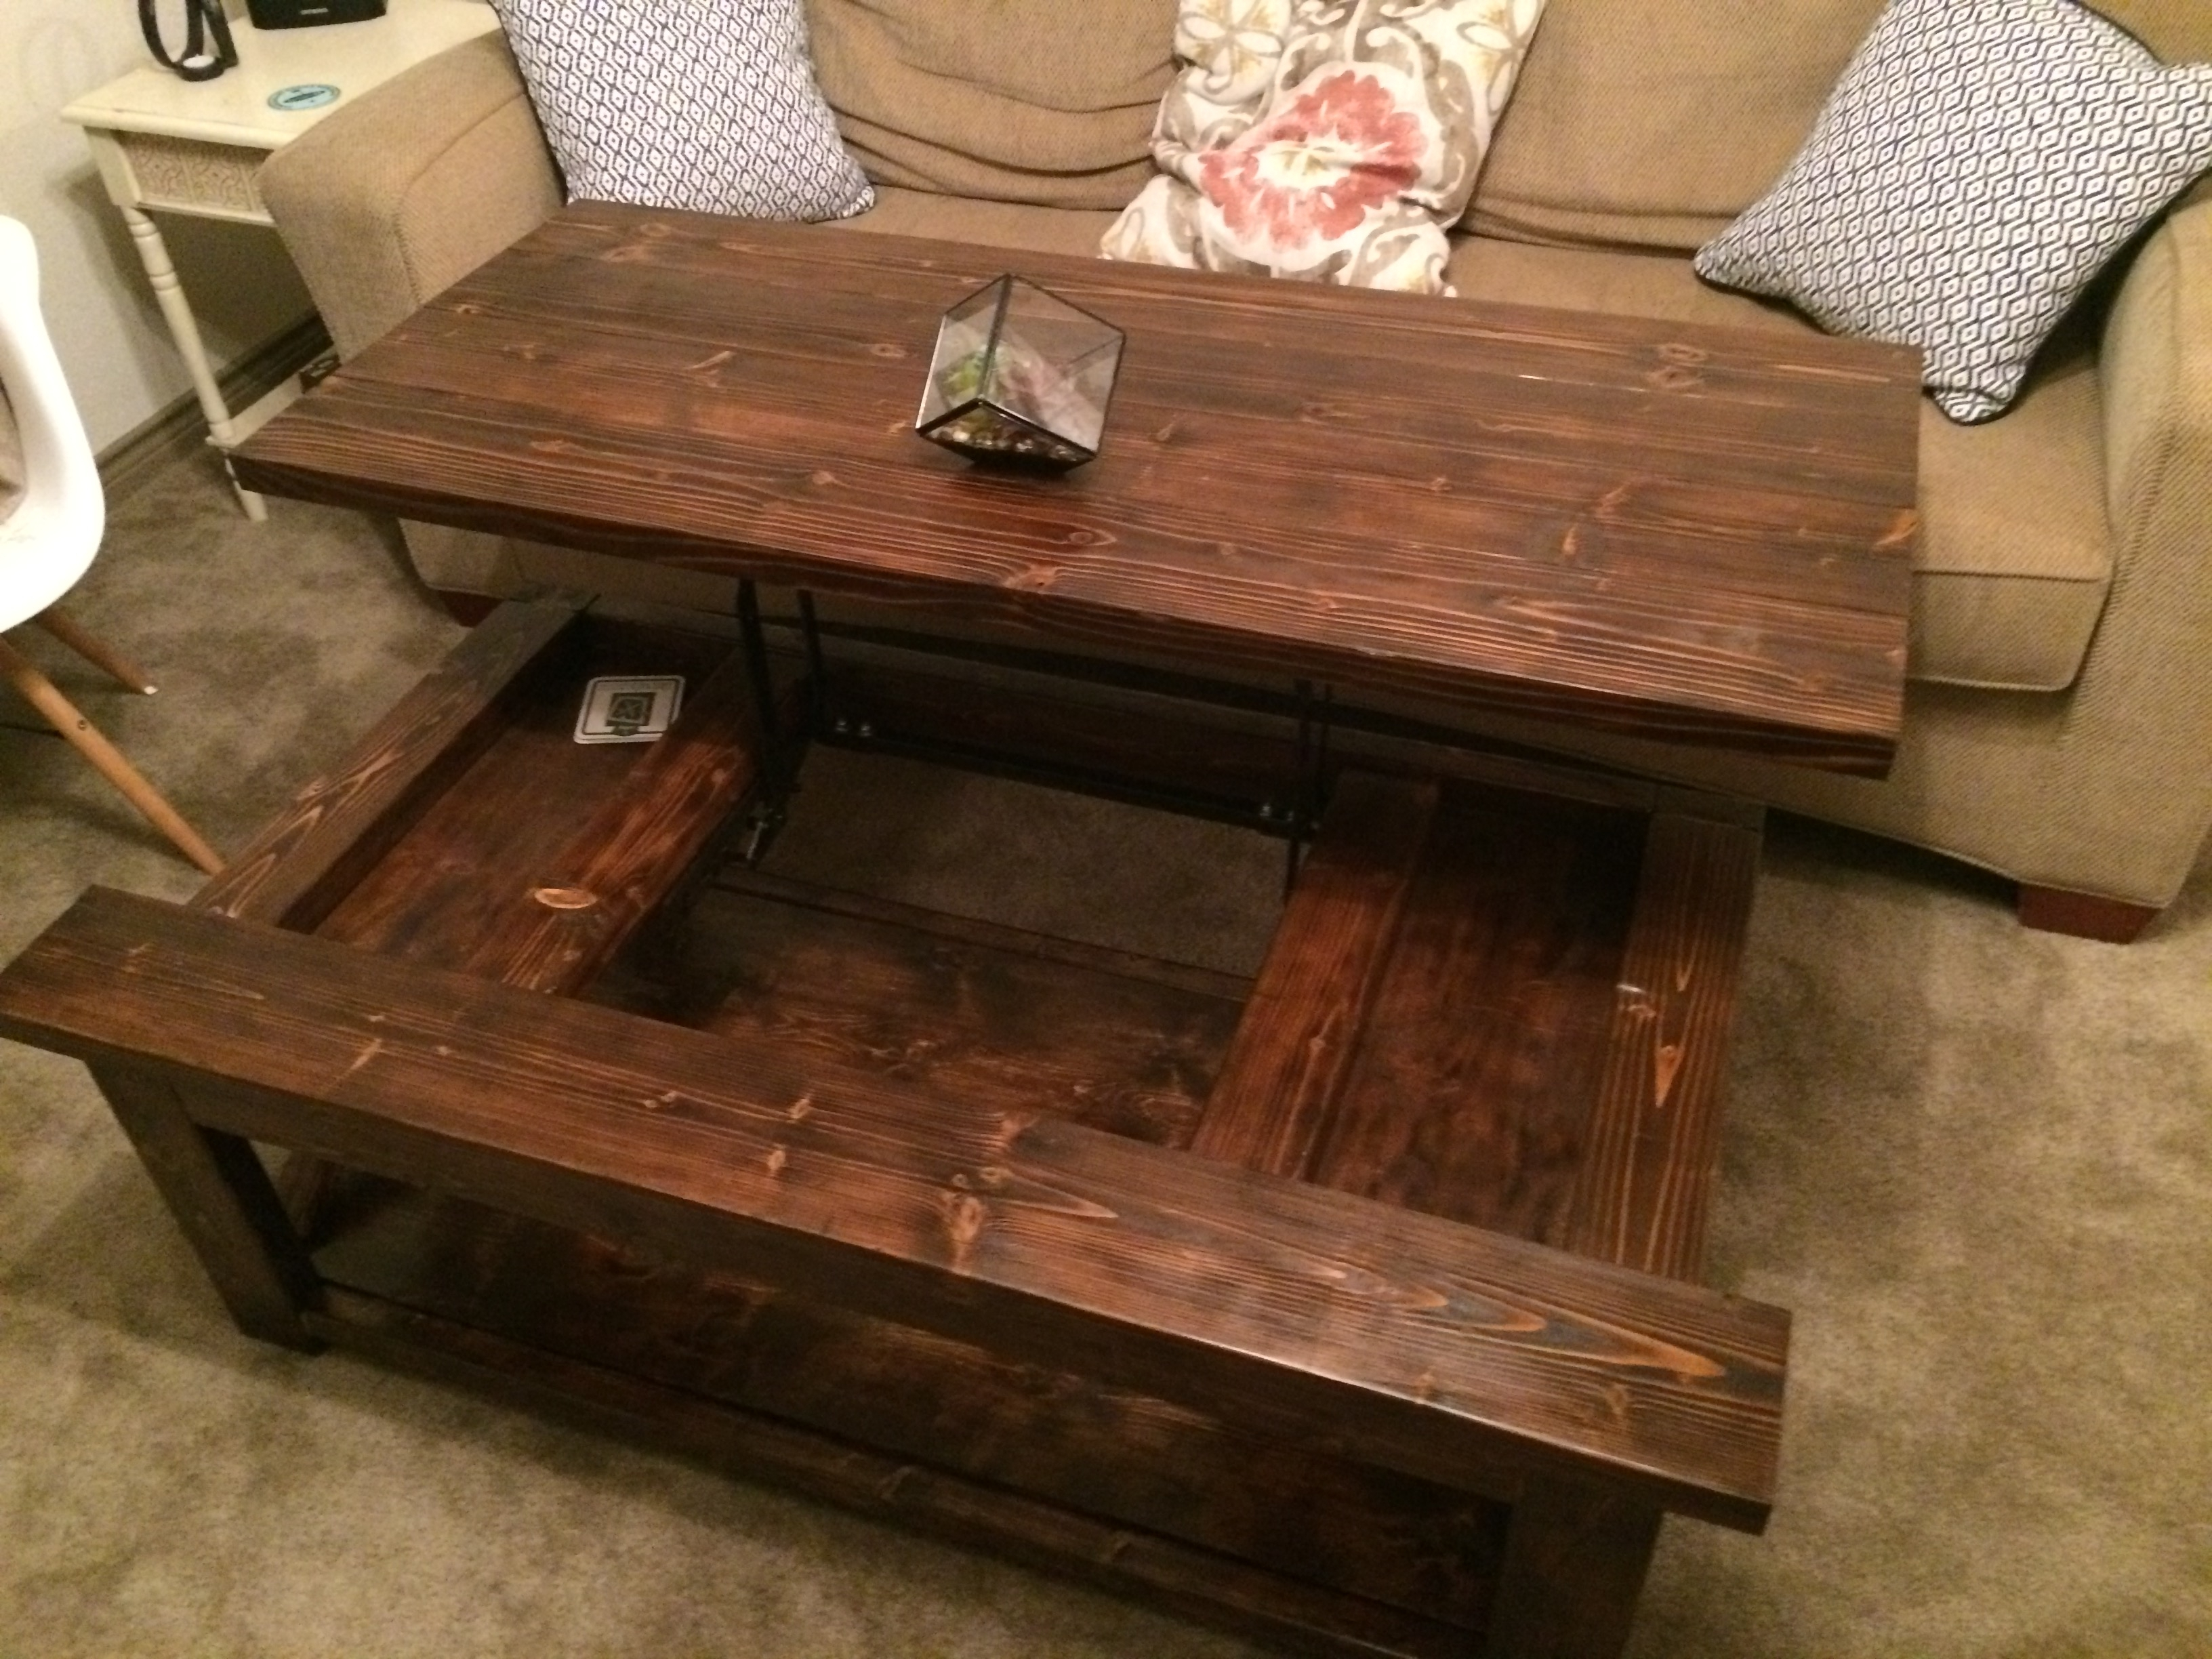 2017 Tillman Rectangle Lift Top Cocktail Tables Intended For Charming Rustic Lift Top Coffee Table (View 1 of 20)